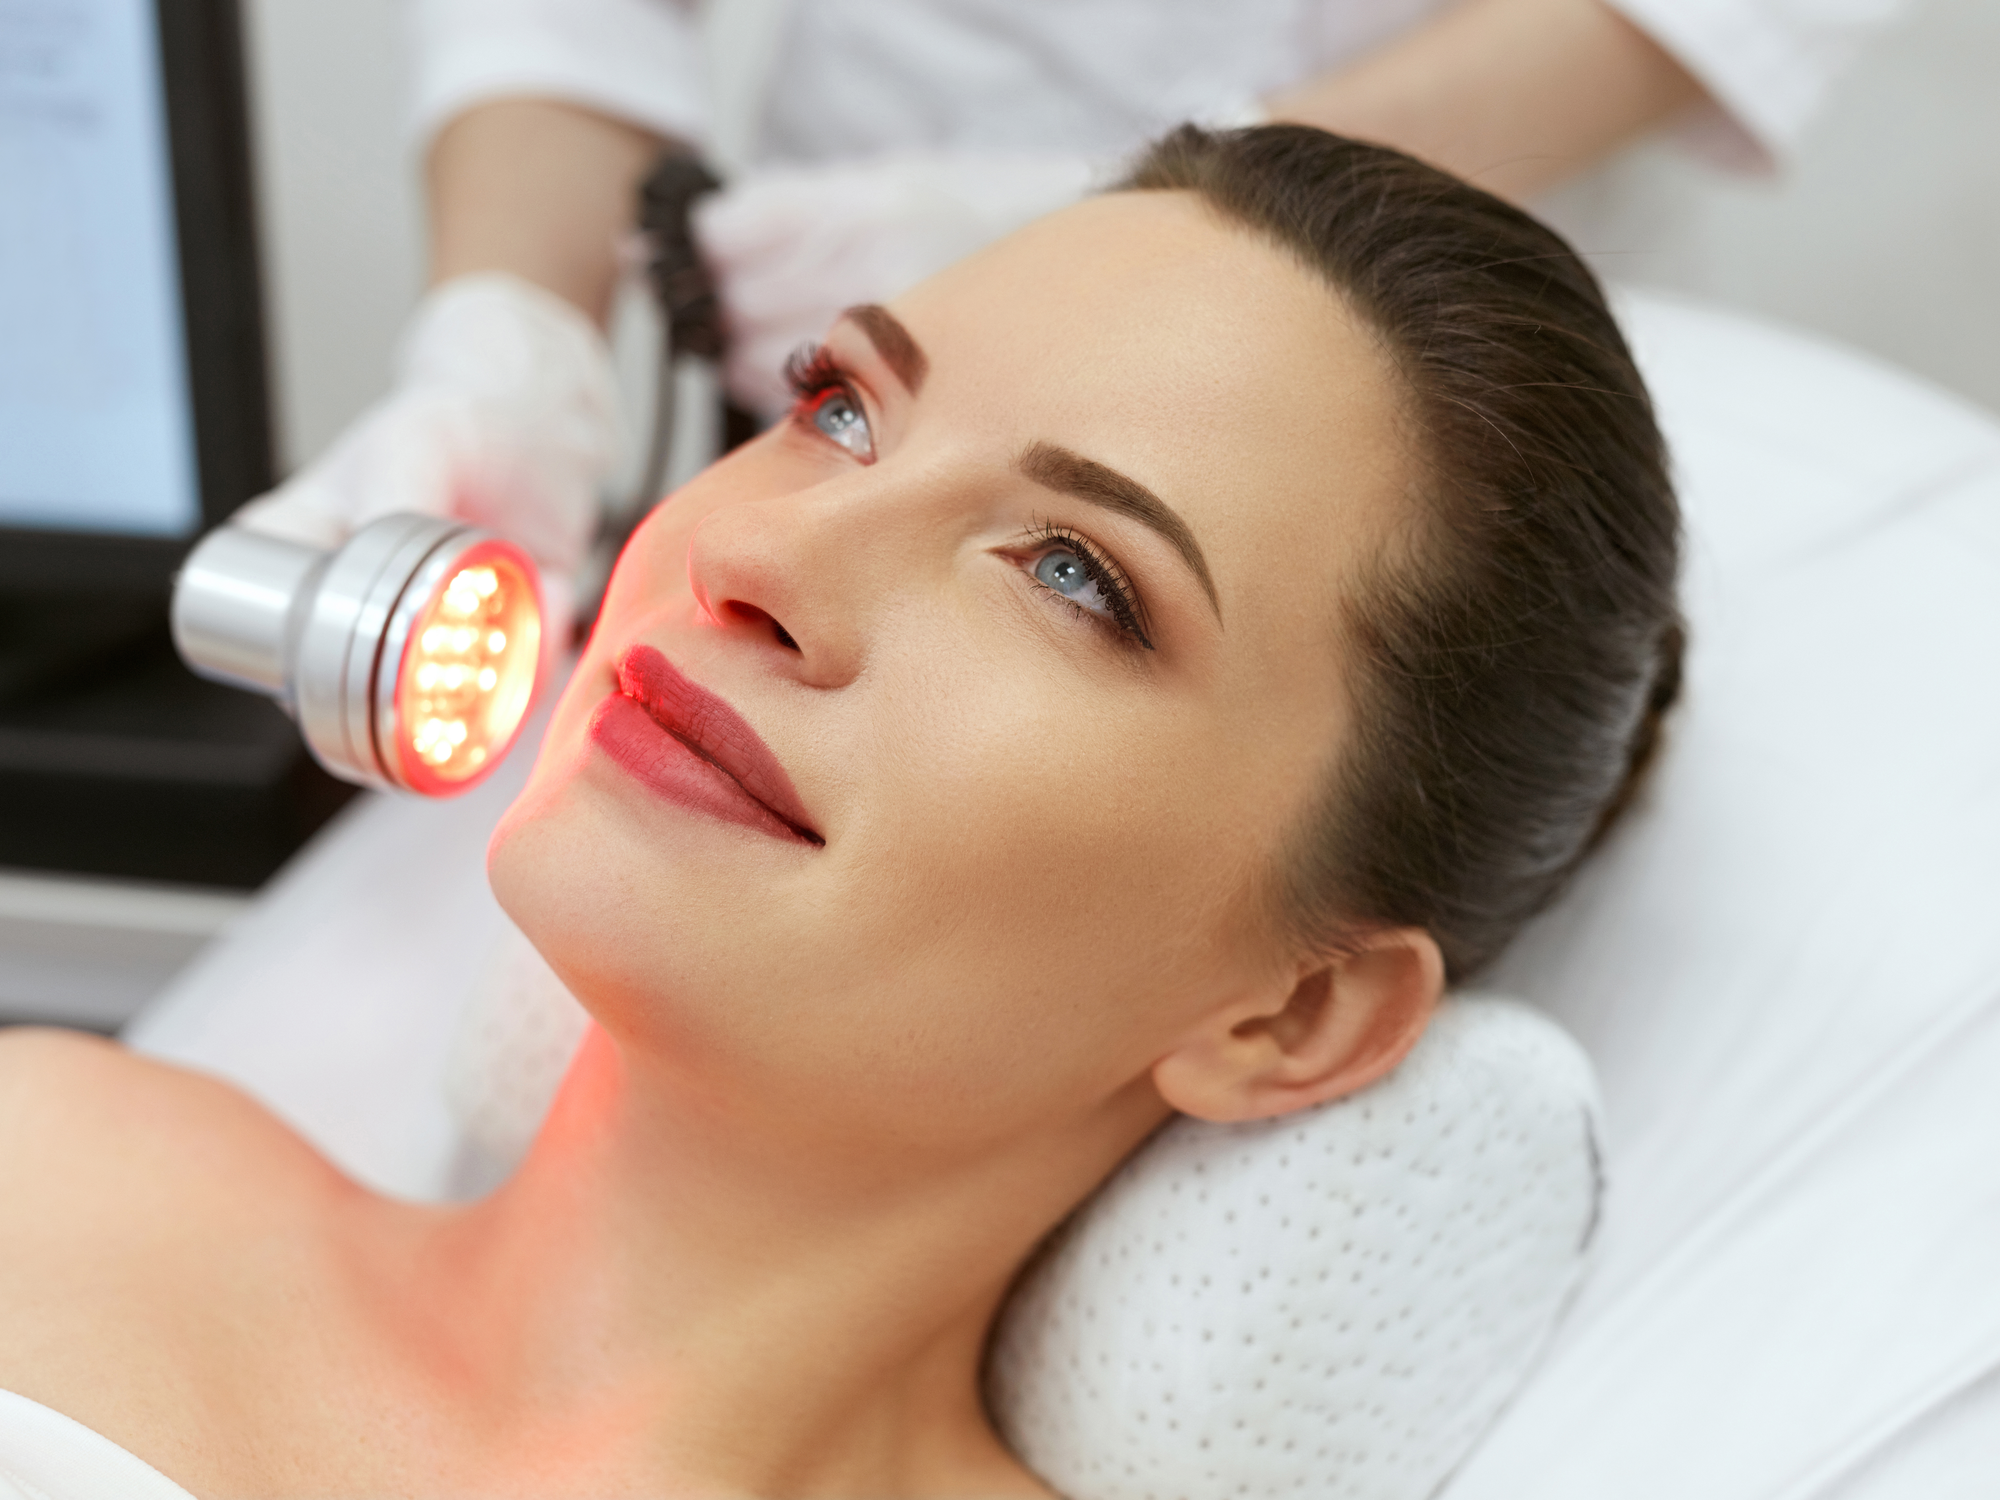 How LightStim Can Help With Acne Scars